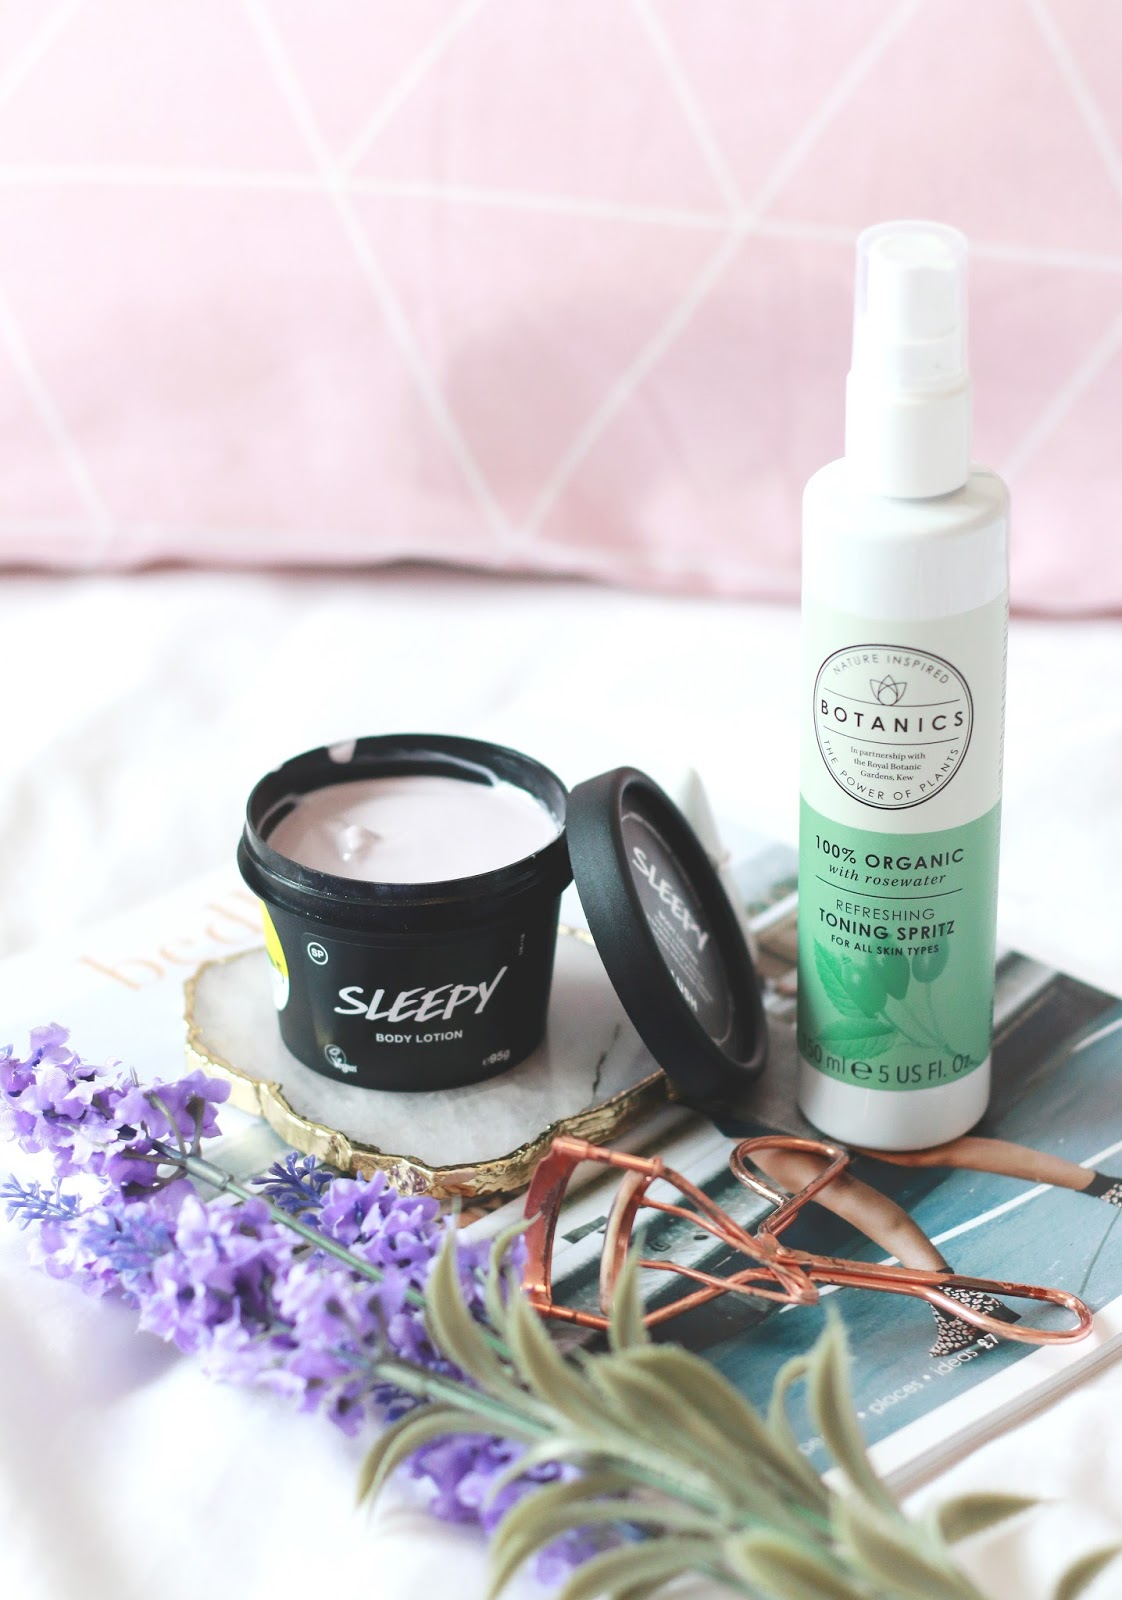 forever september, blogger, lifestyle blogger, fashion blogger, beauty blogger, sleep, good nights sleep, skincare, beauty, makeup, botanics, lush, lush sleepy, lavender, floral